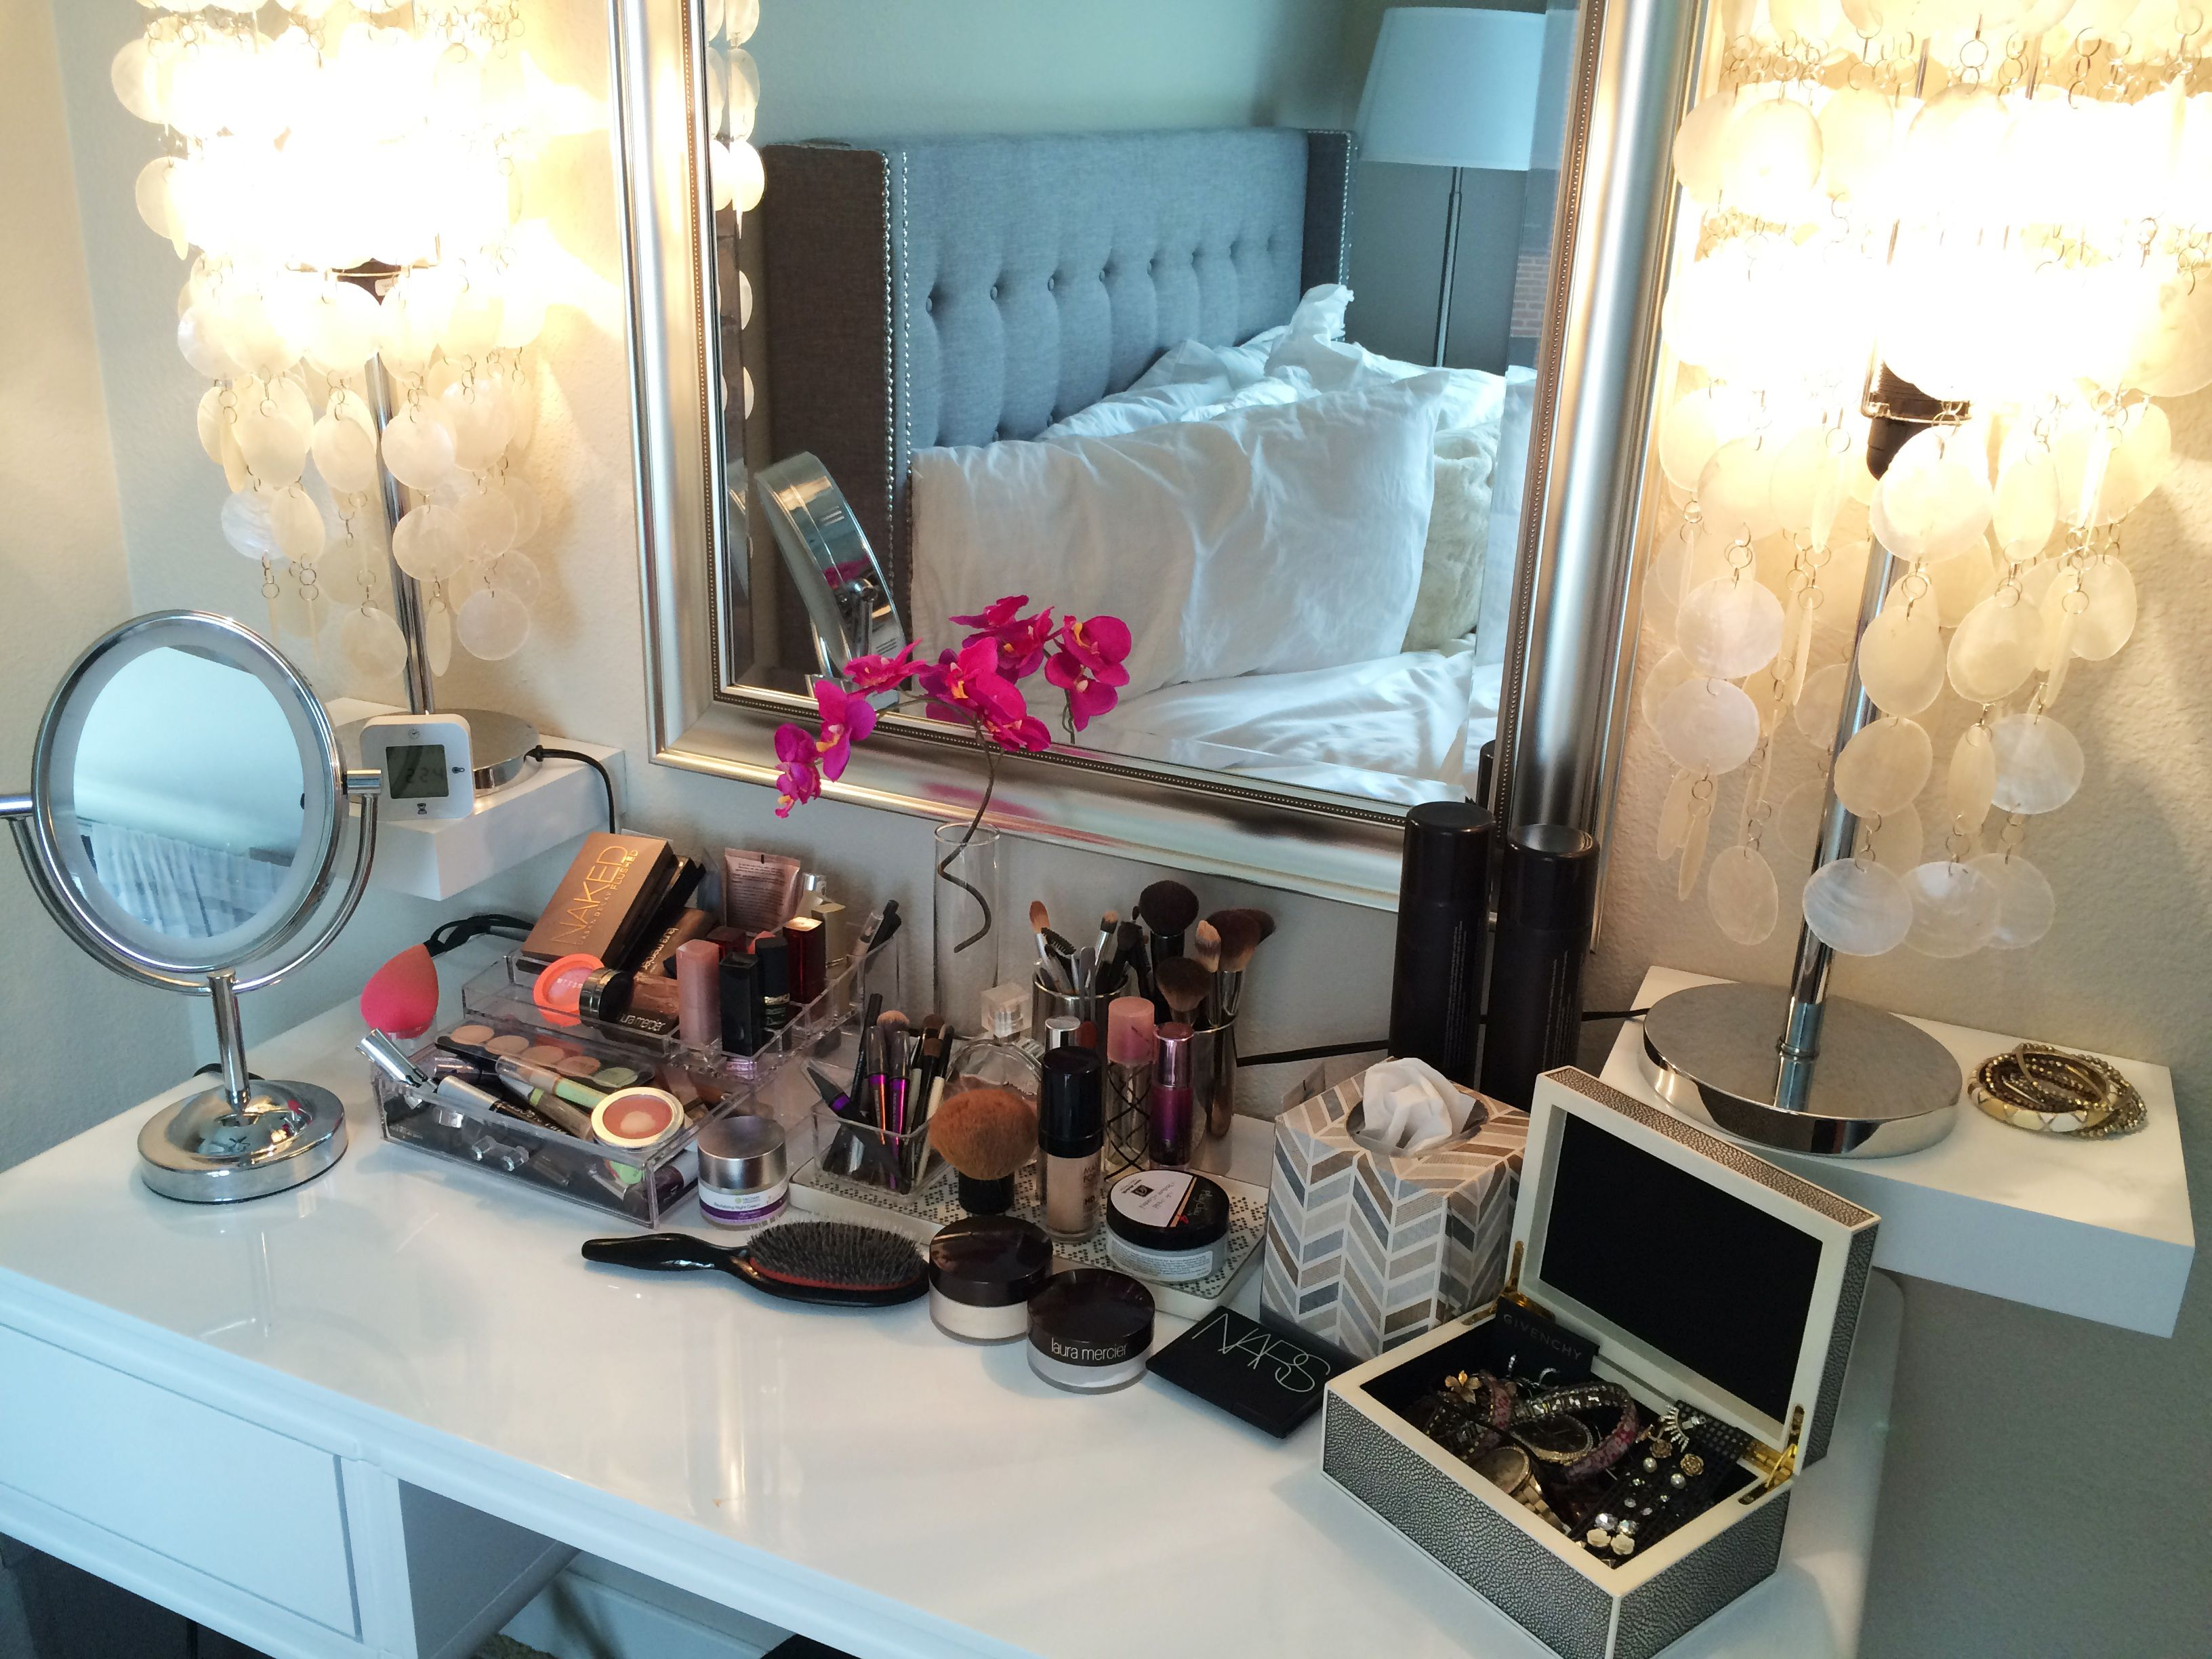 Bedroom vanity. Every girl needs a space to get ready, right?